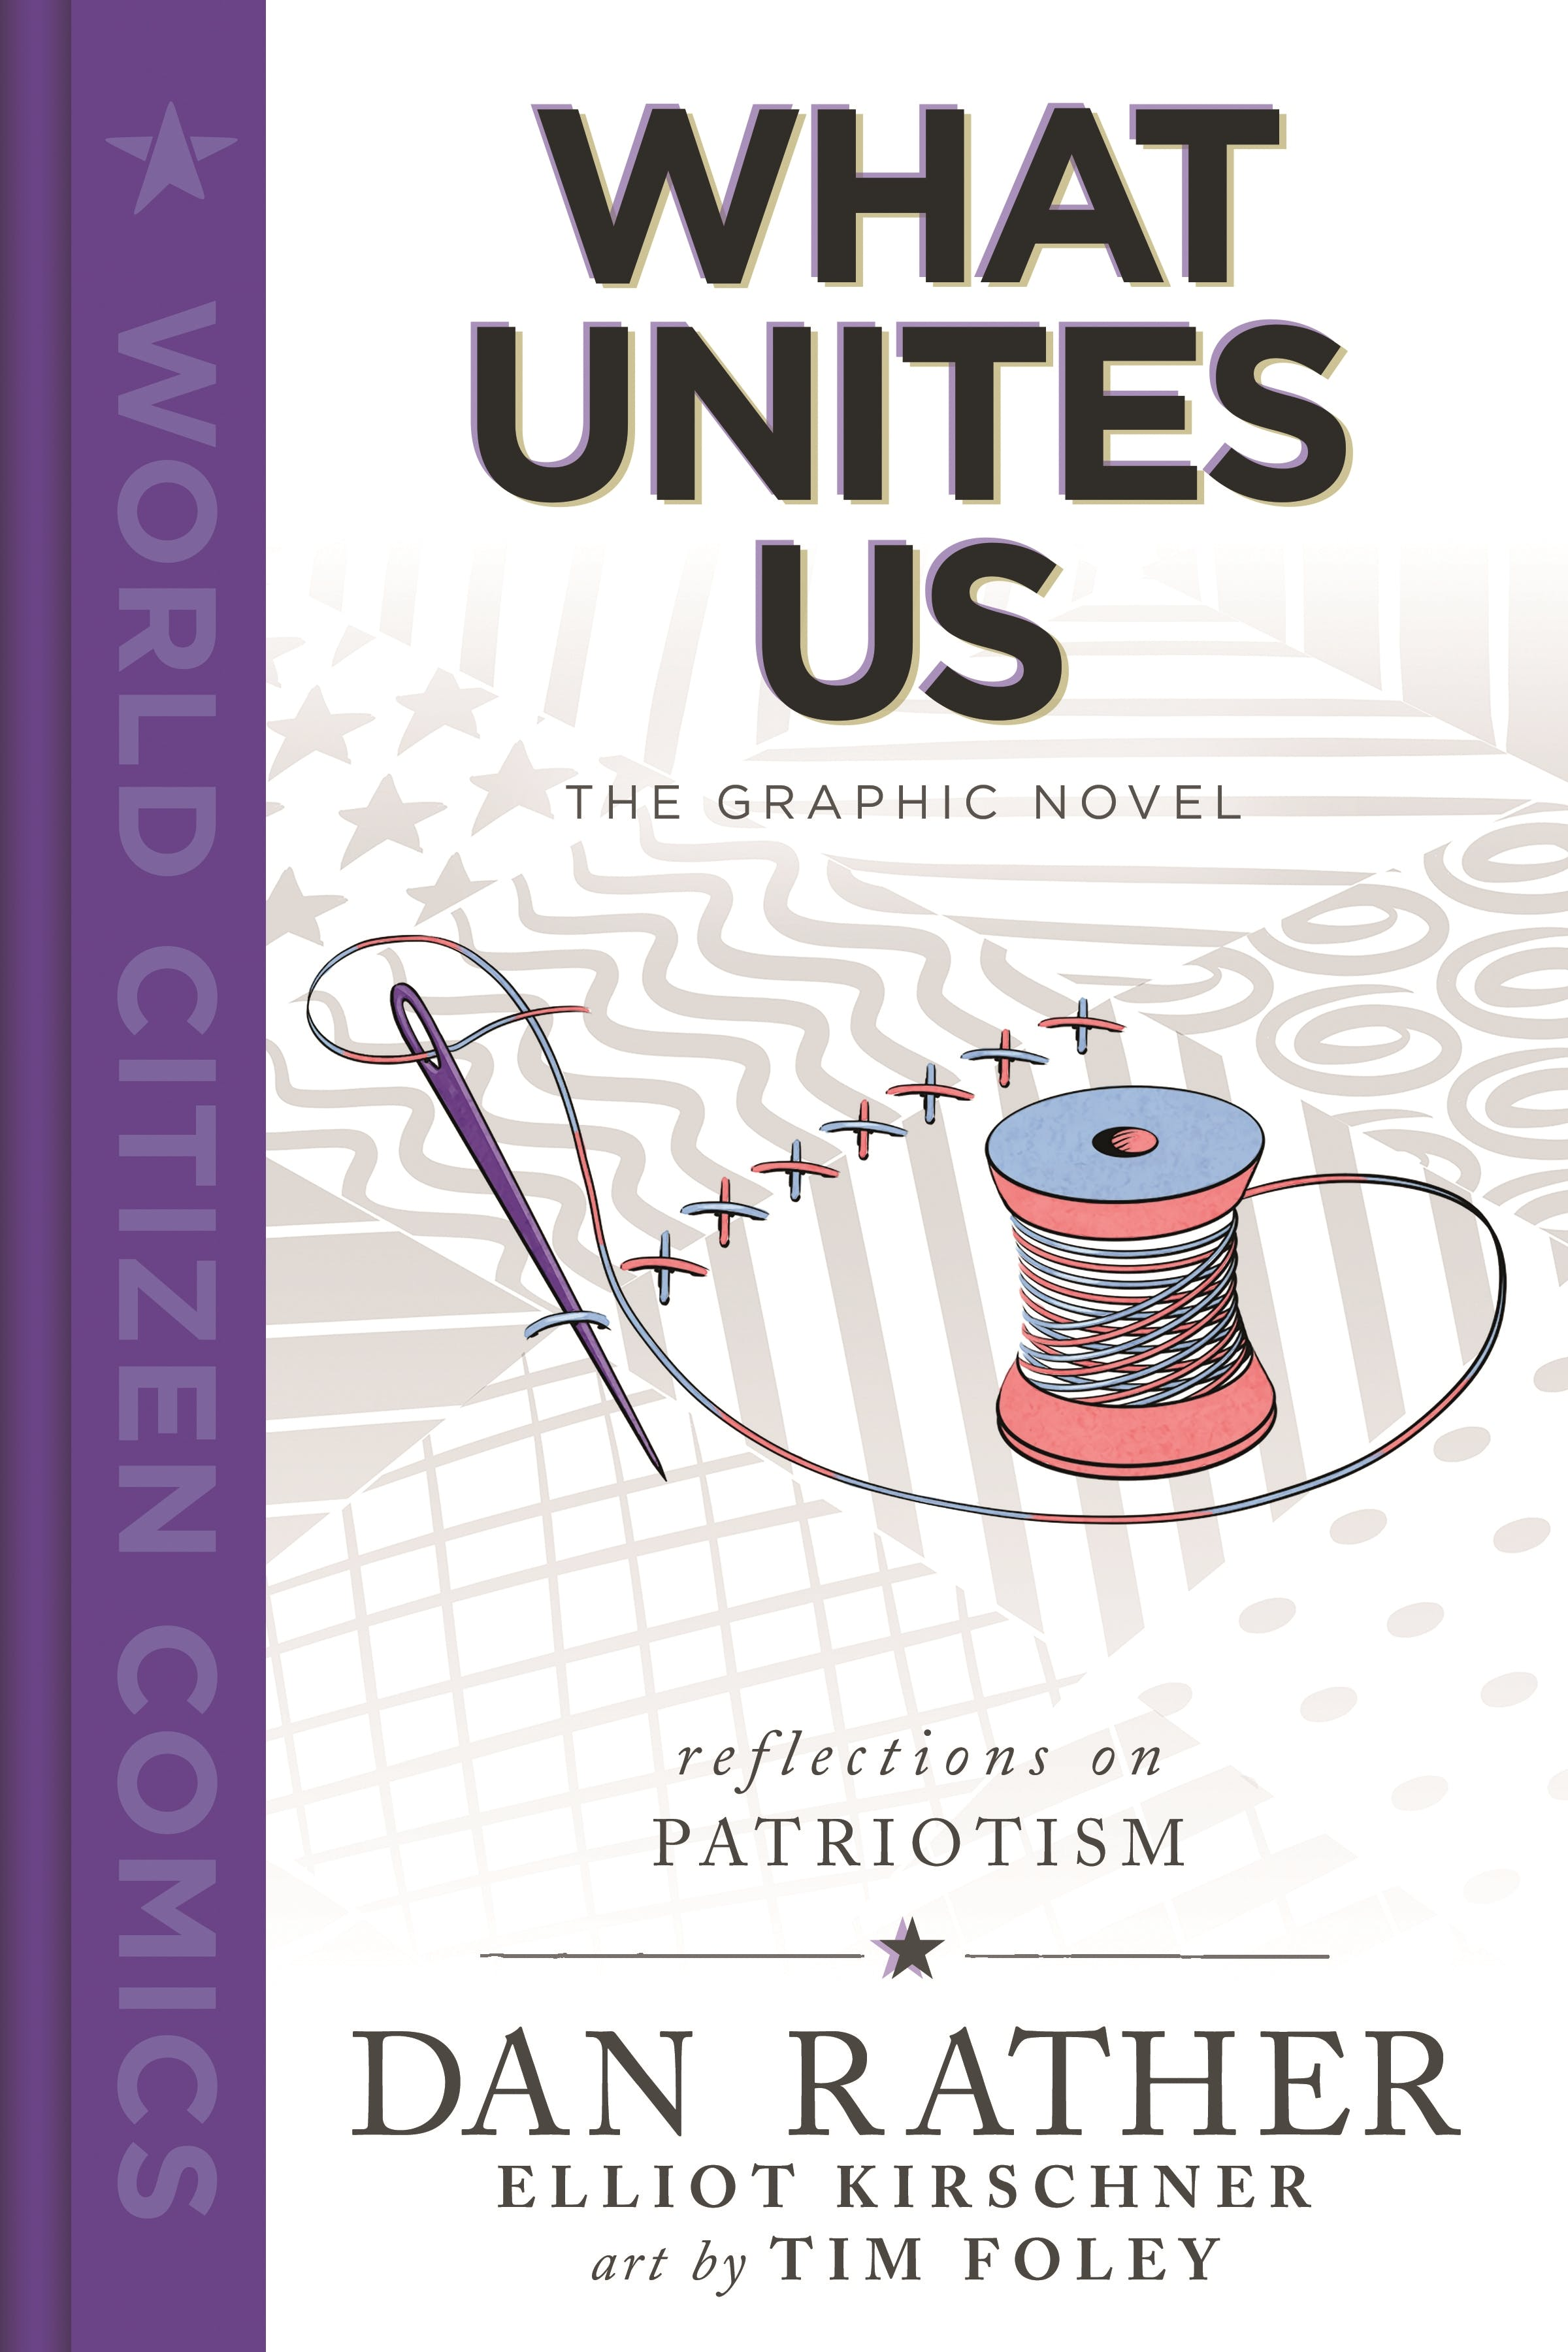 Image of What Unites Us: The Graphic Novel